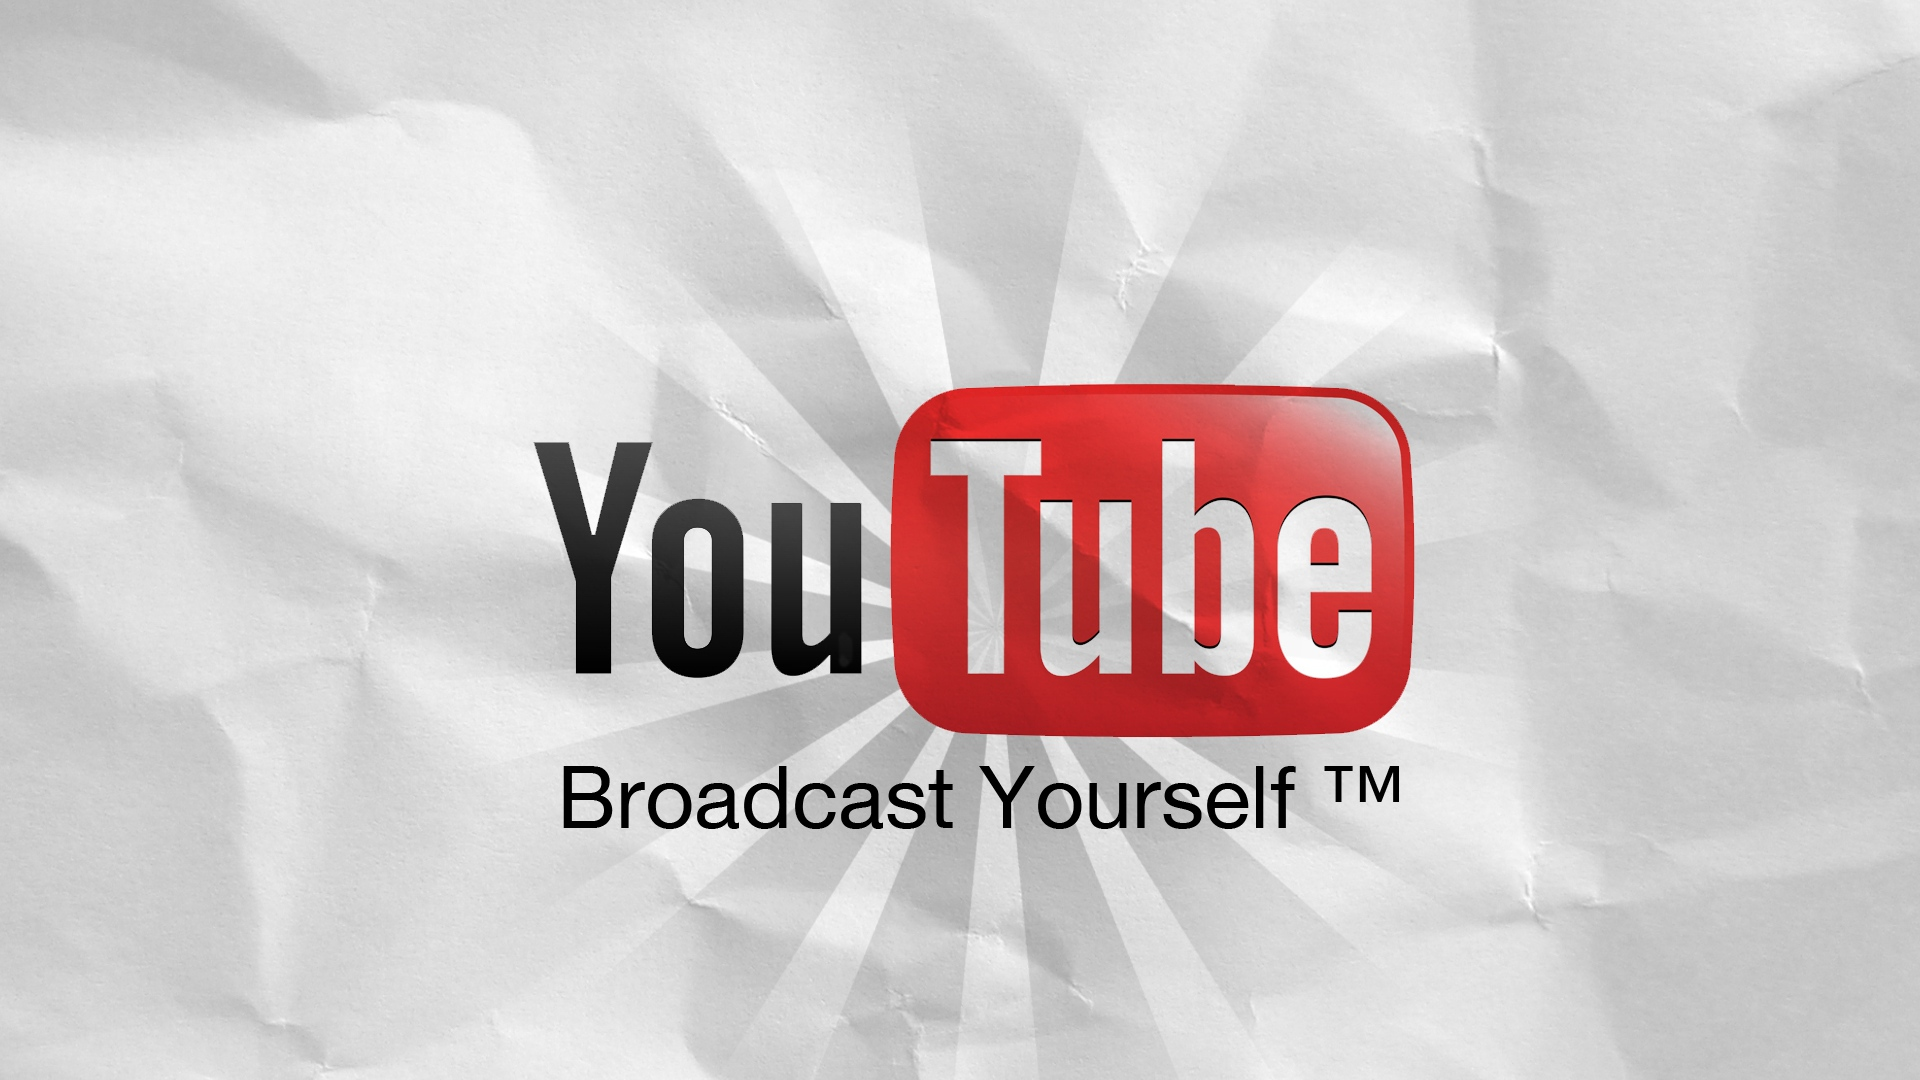 how to get hd videos on youtube